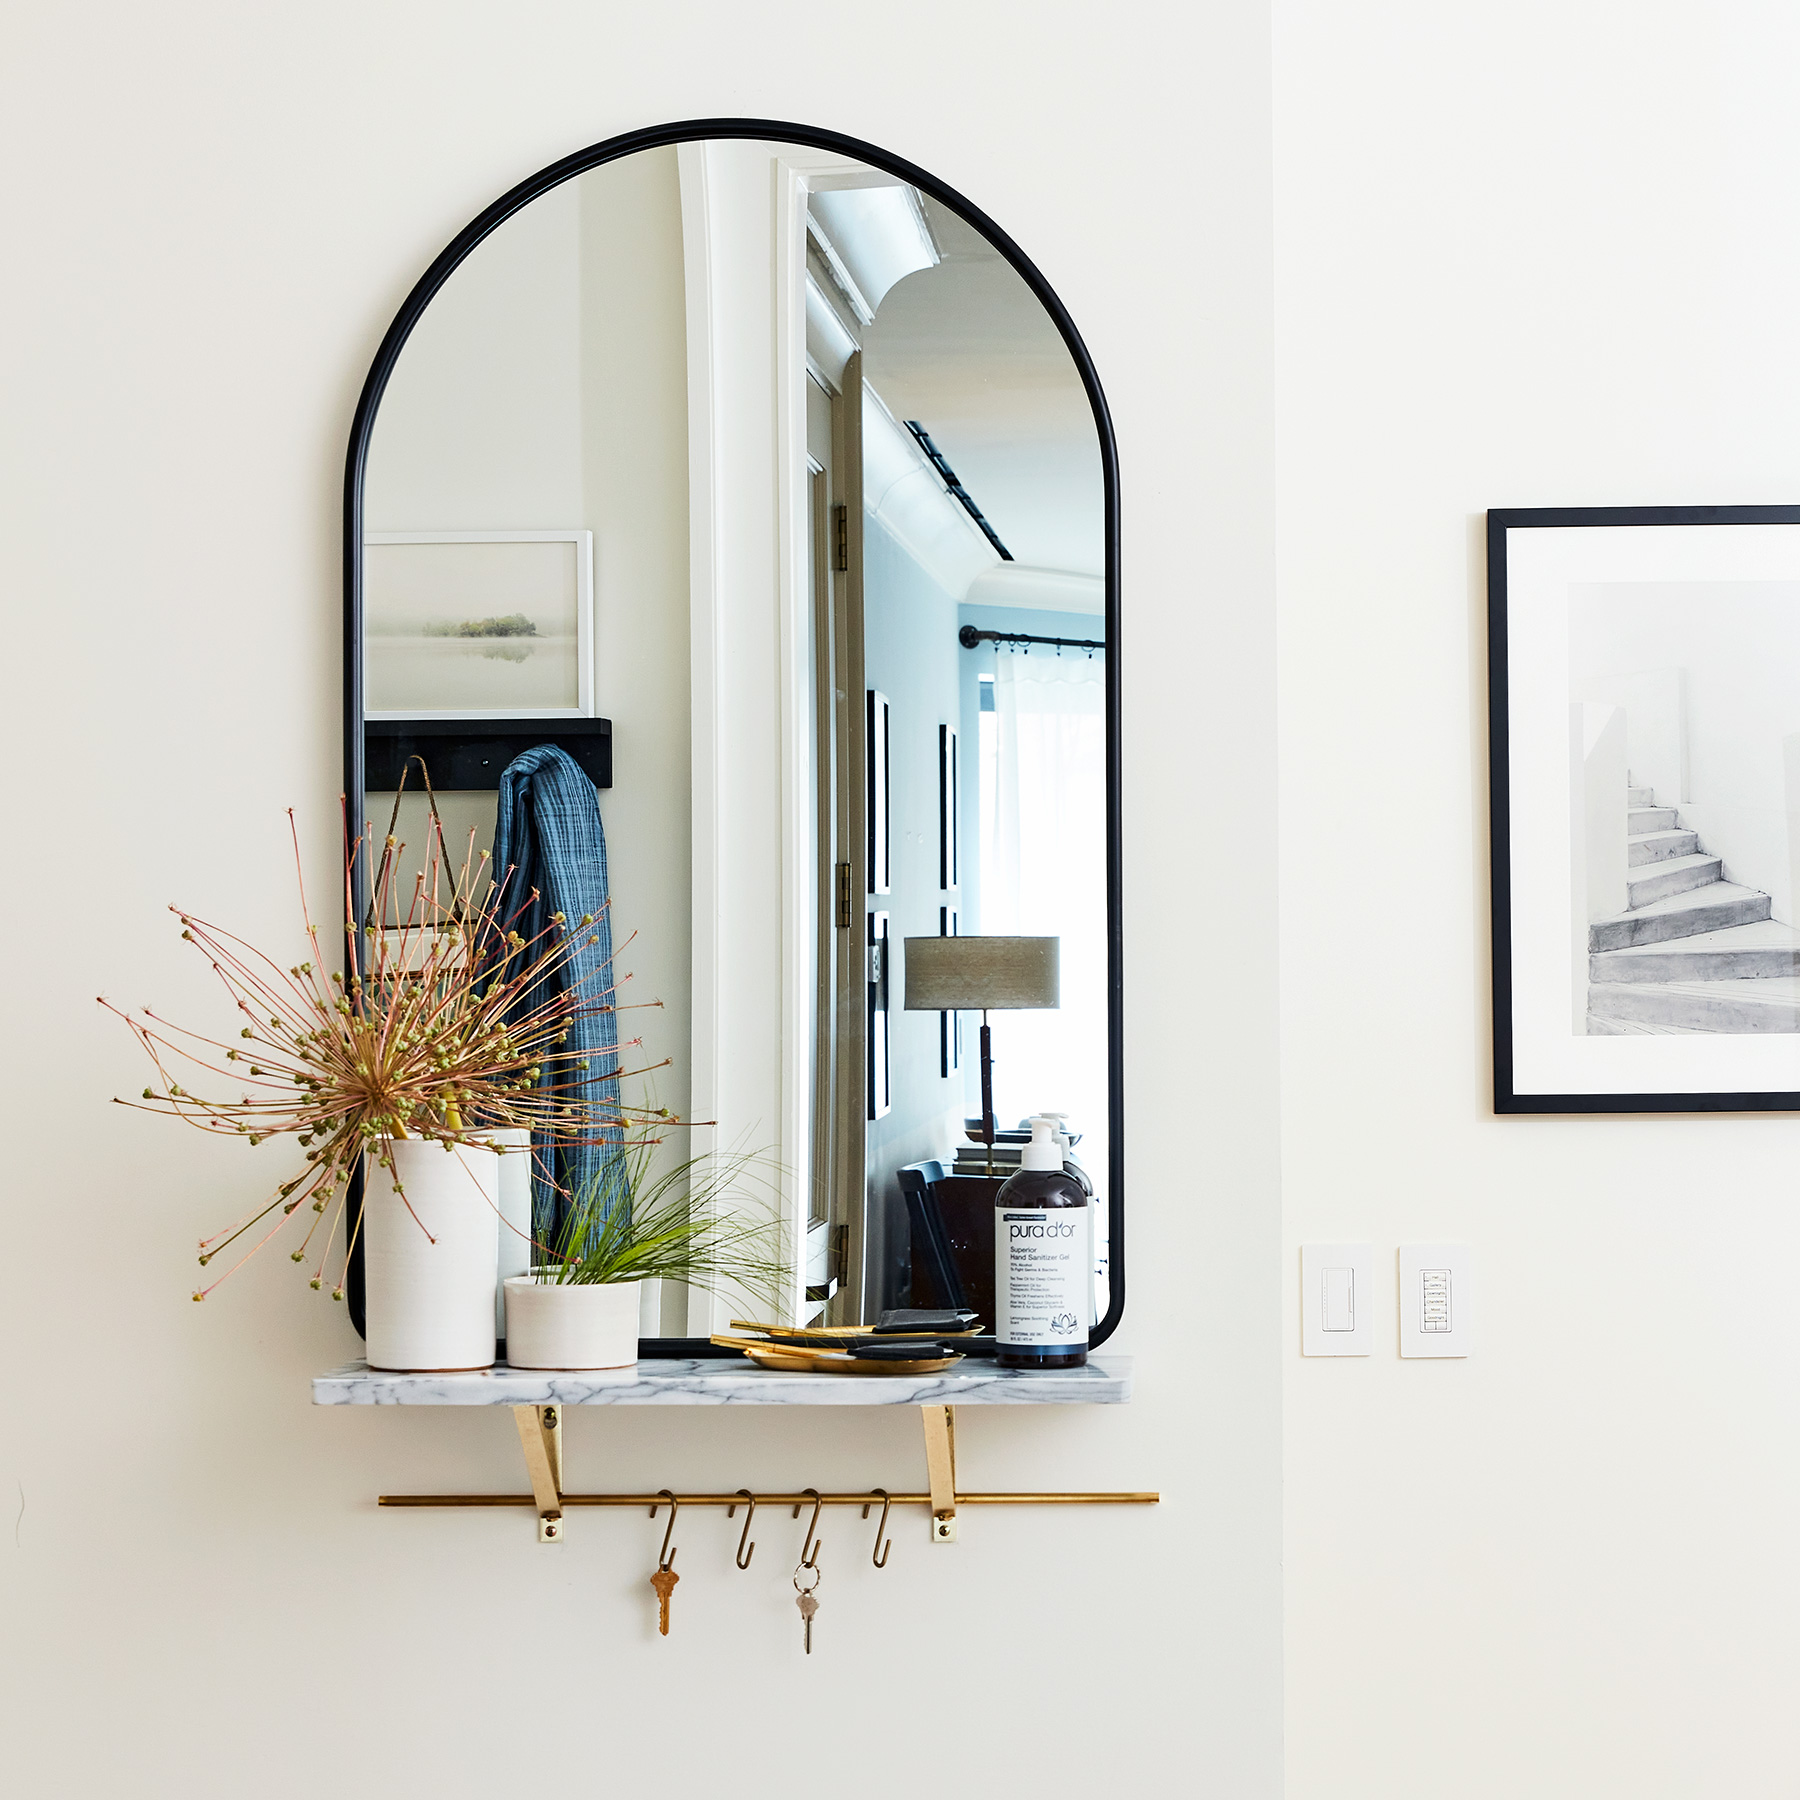 2020 Real Simple Home Tour: Mirror